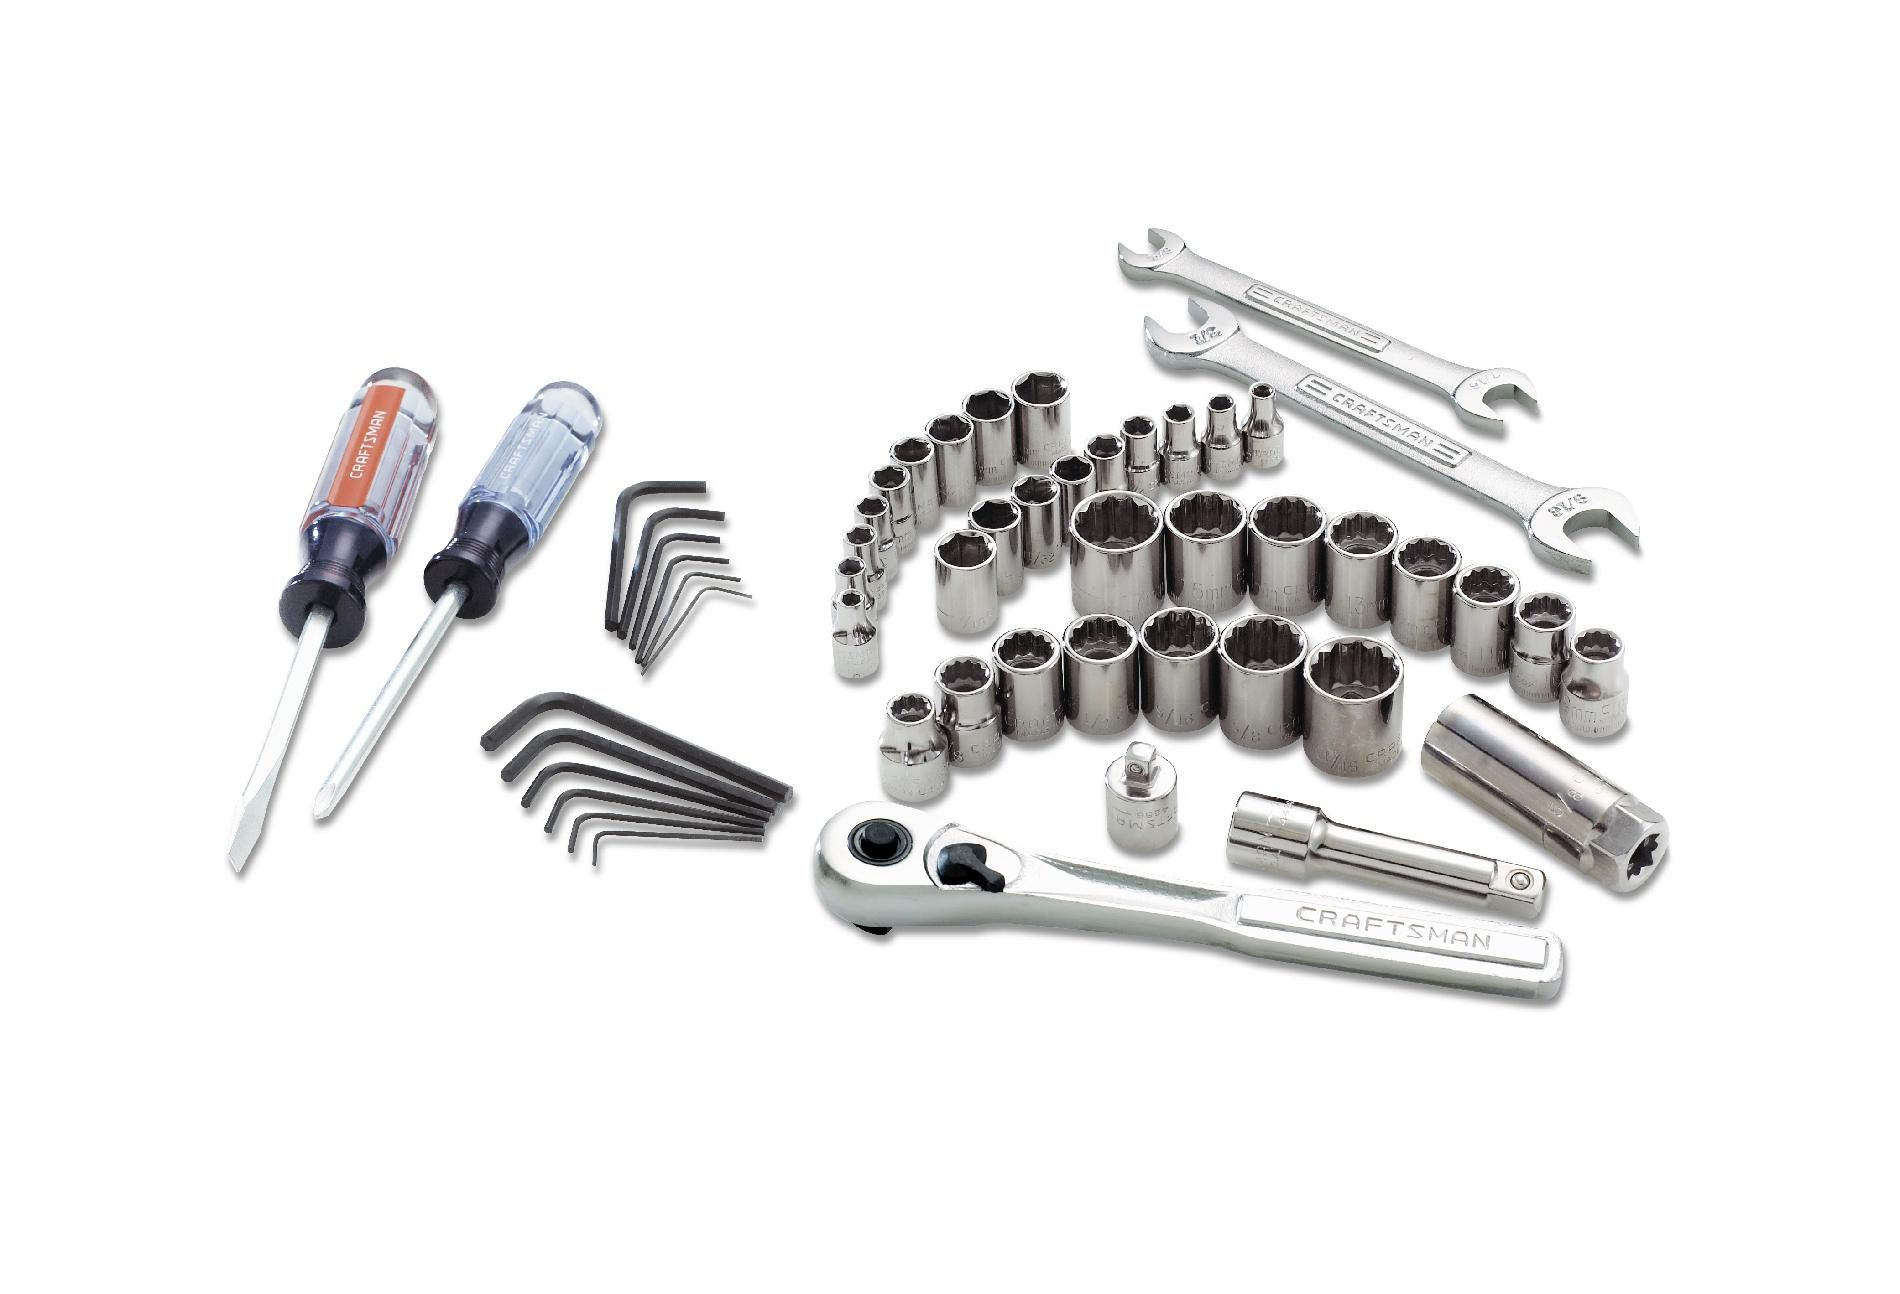 Craftsman 53 pc. Mechanics Tool Set